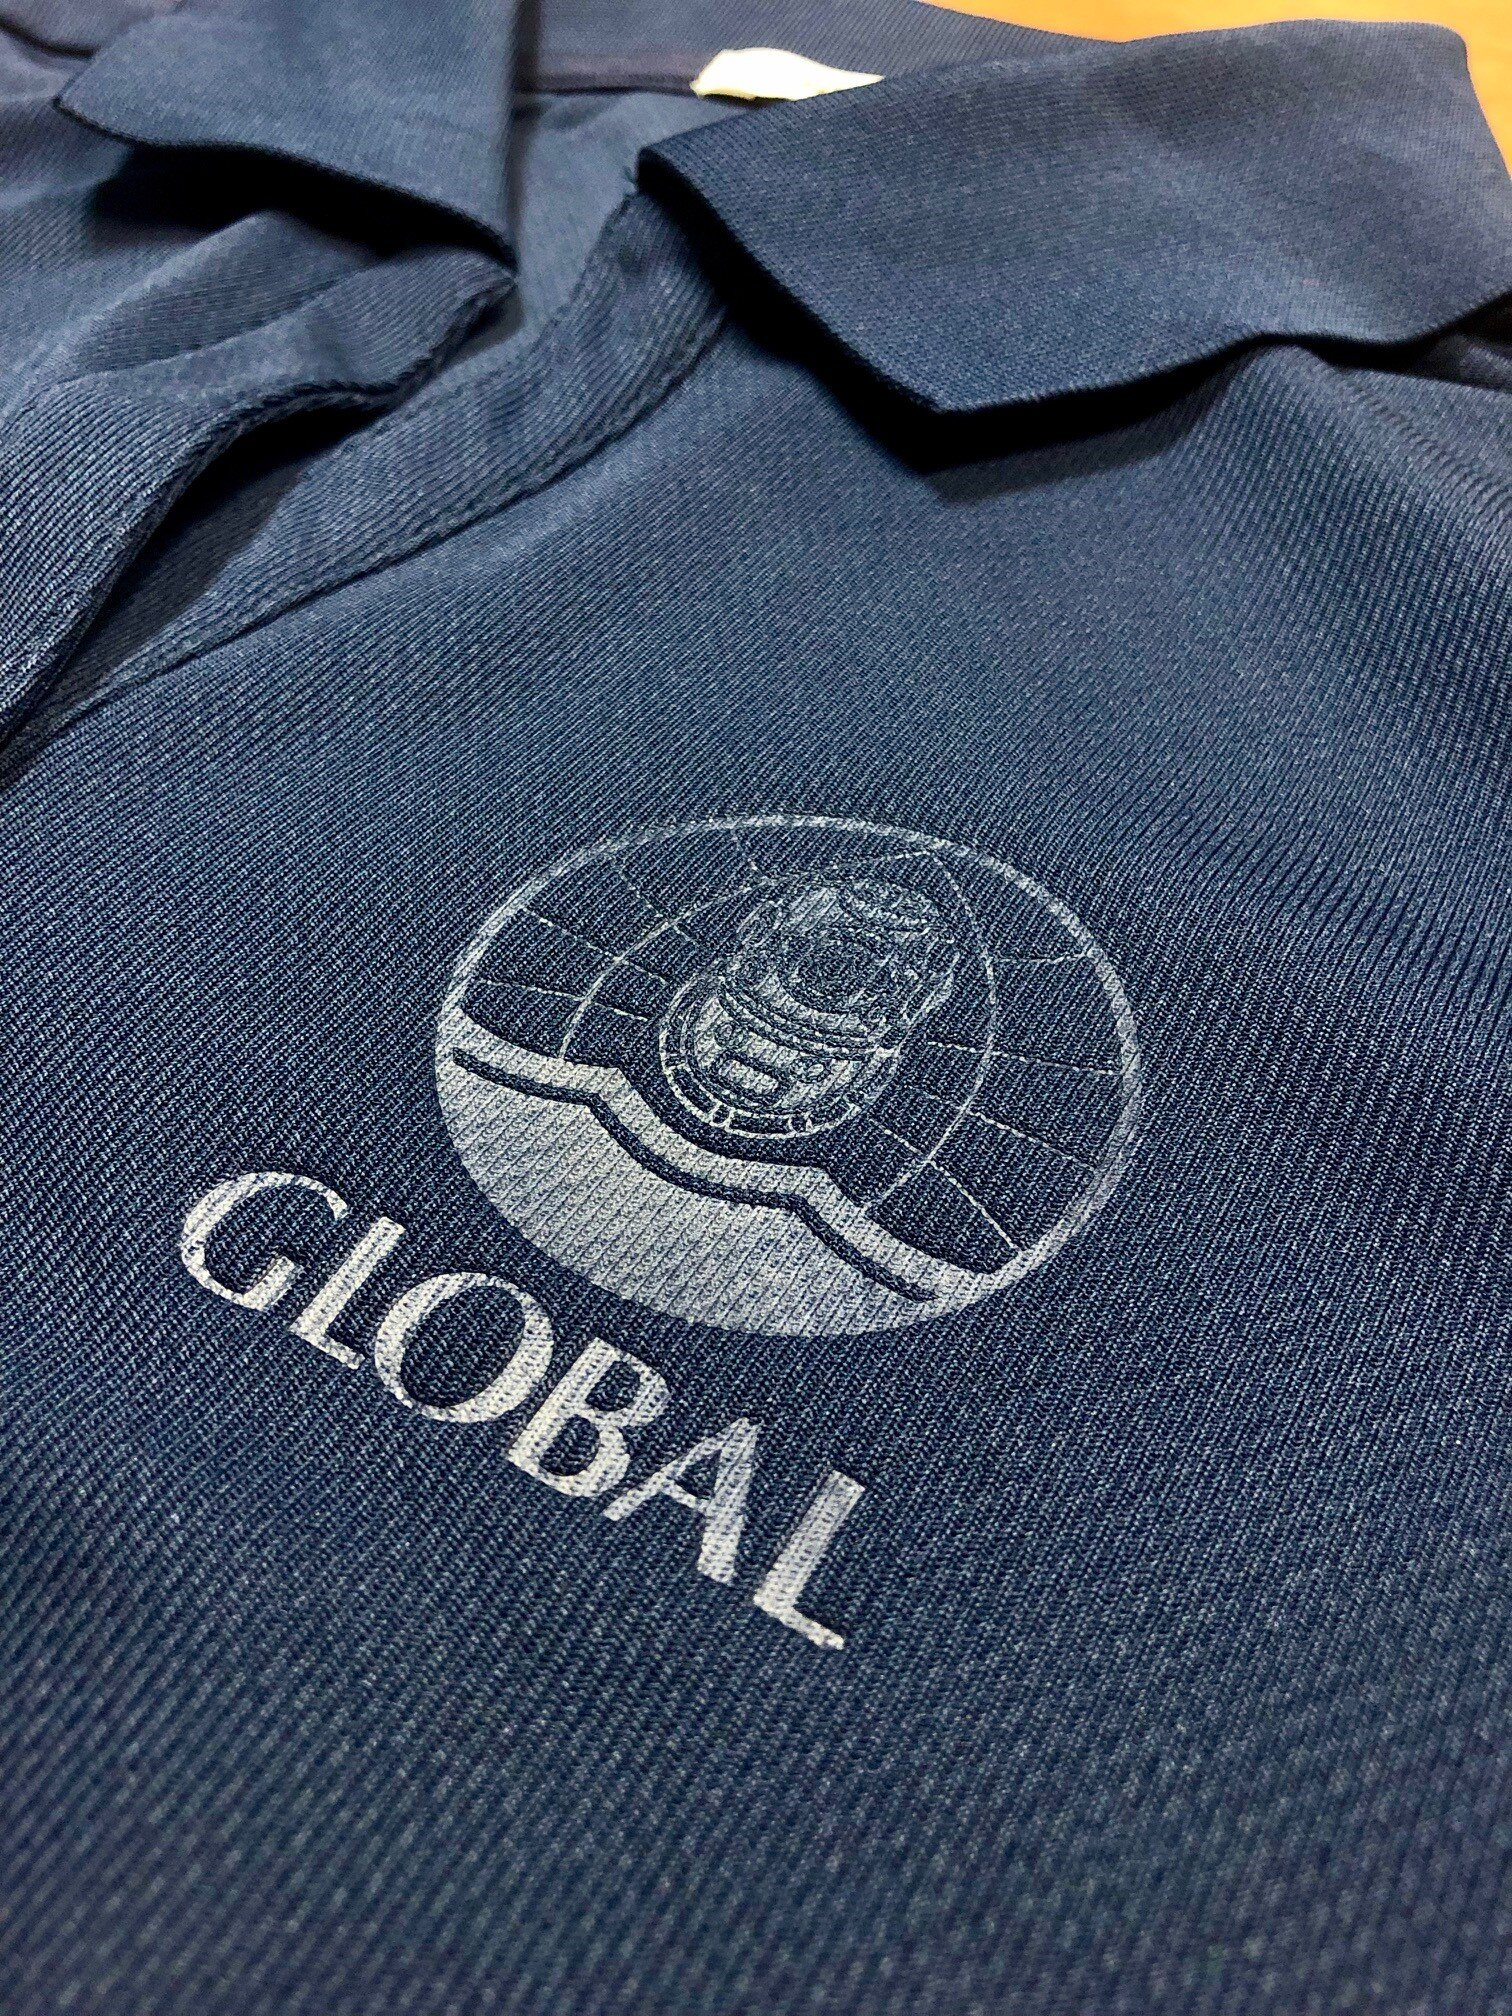 logounltd_laser_etching_embroidery_screen_printing_apparel_uniform_custom_tshirts_t_shirt_kirkland_bellevue_seattle_redmond_woodinville_branded_merchandise_promotional_products_logo_unltd_global_diving_divers (1).jpg